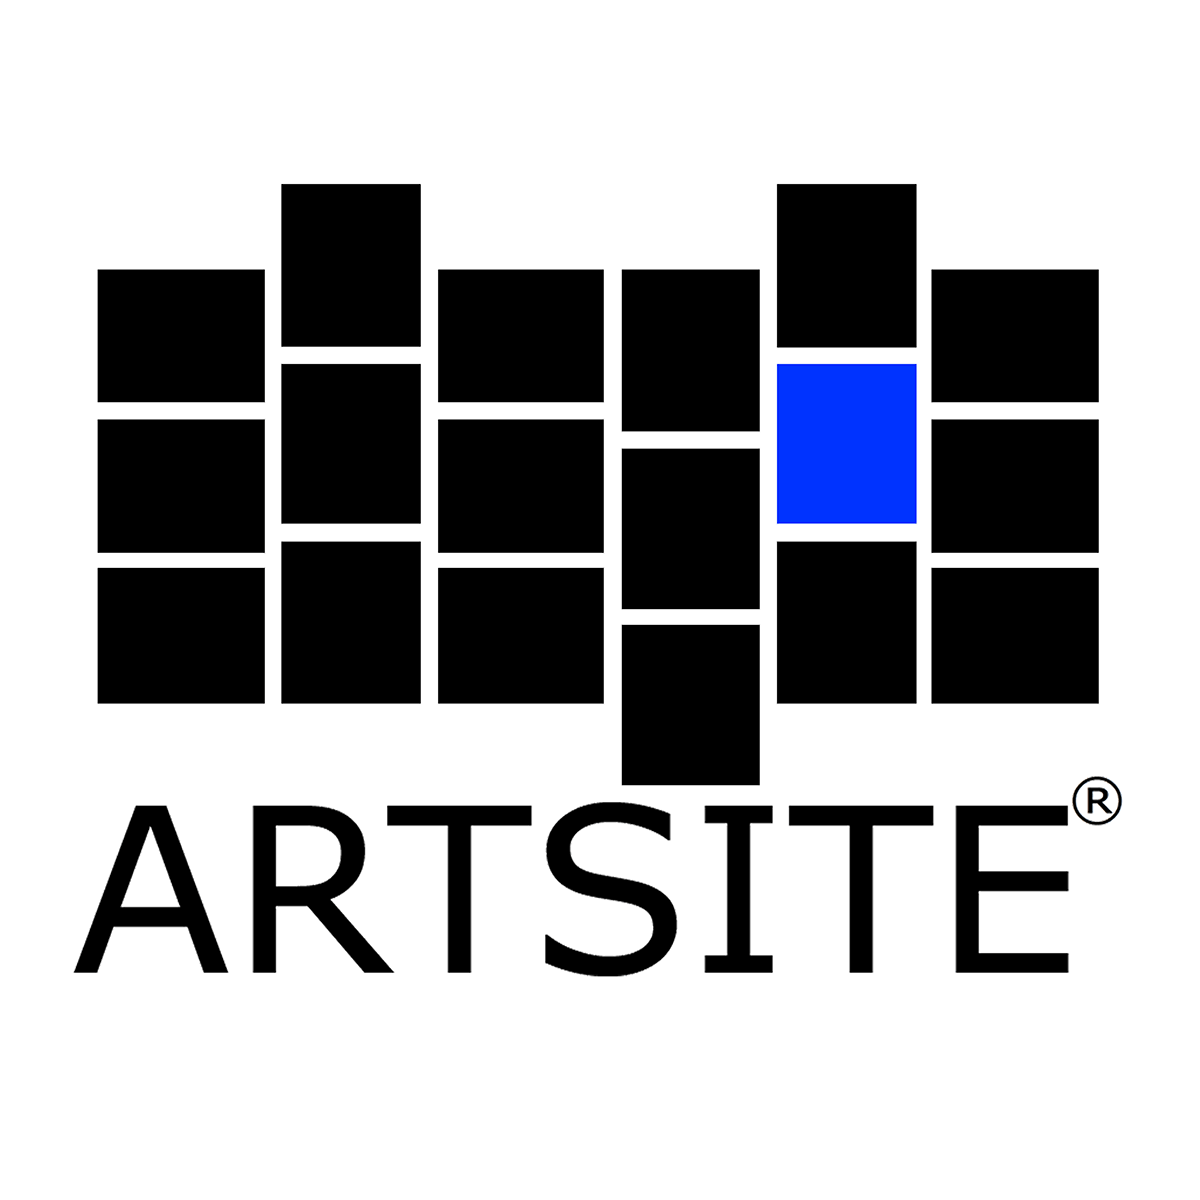 Artsite is located in Camperdown, Sydney. With two large exhibition areas, plus a stockroom gallery, Artsite Gallery offers a balanced mix of Solo and curated group exhibitions showcasing a diverse range of works from both well established and local emerging Sydney Artists.